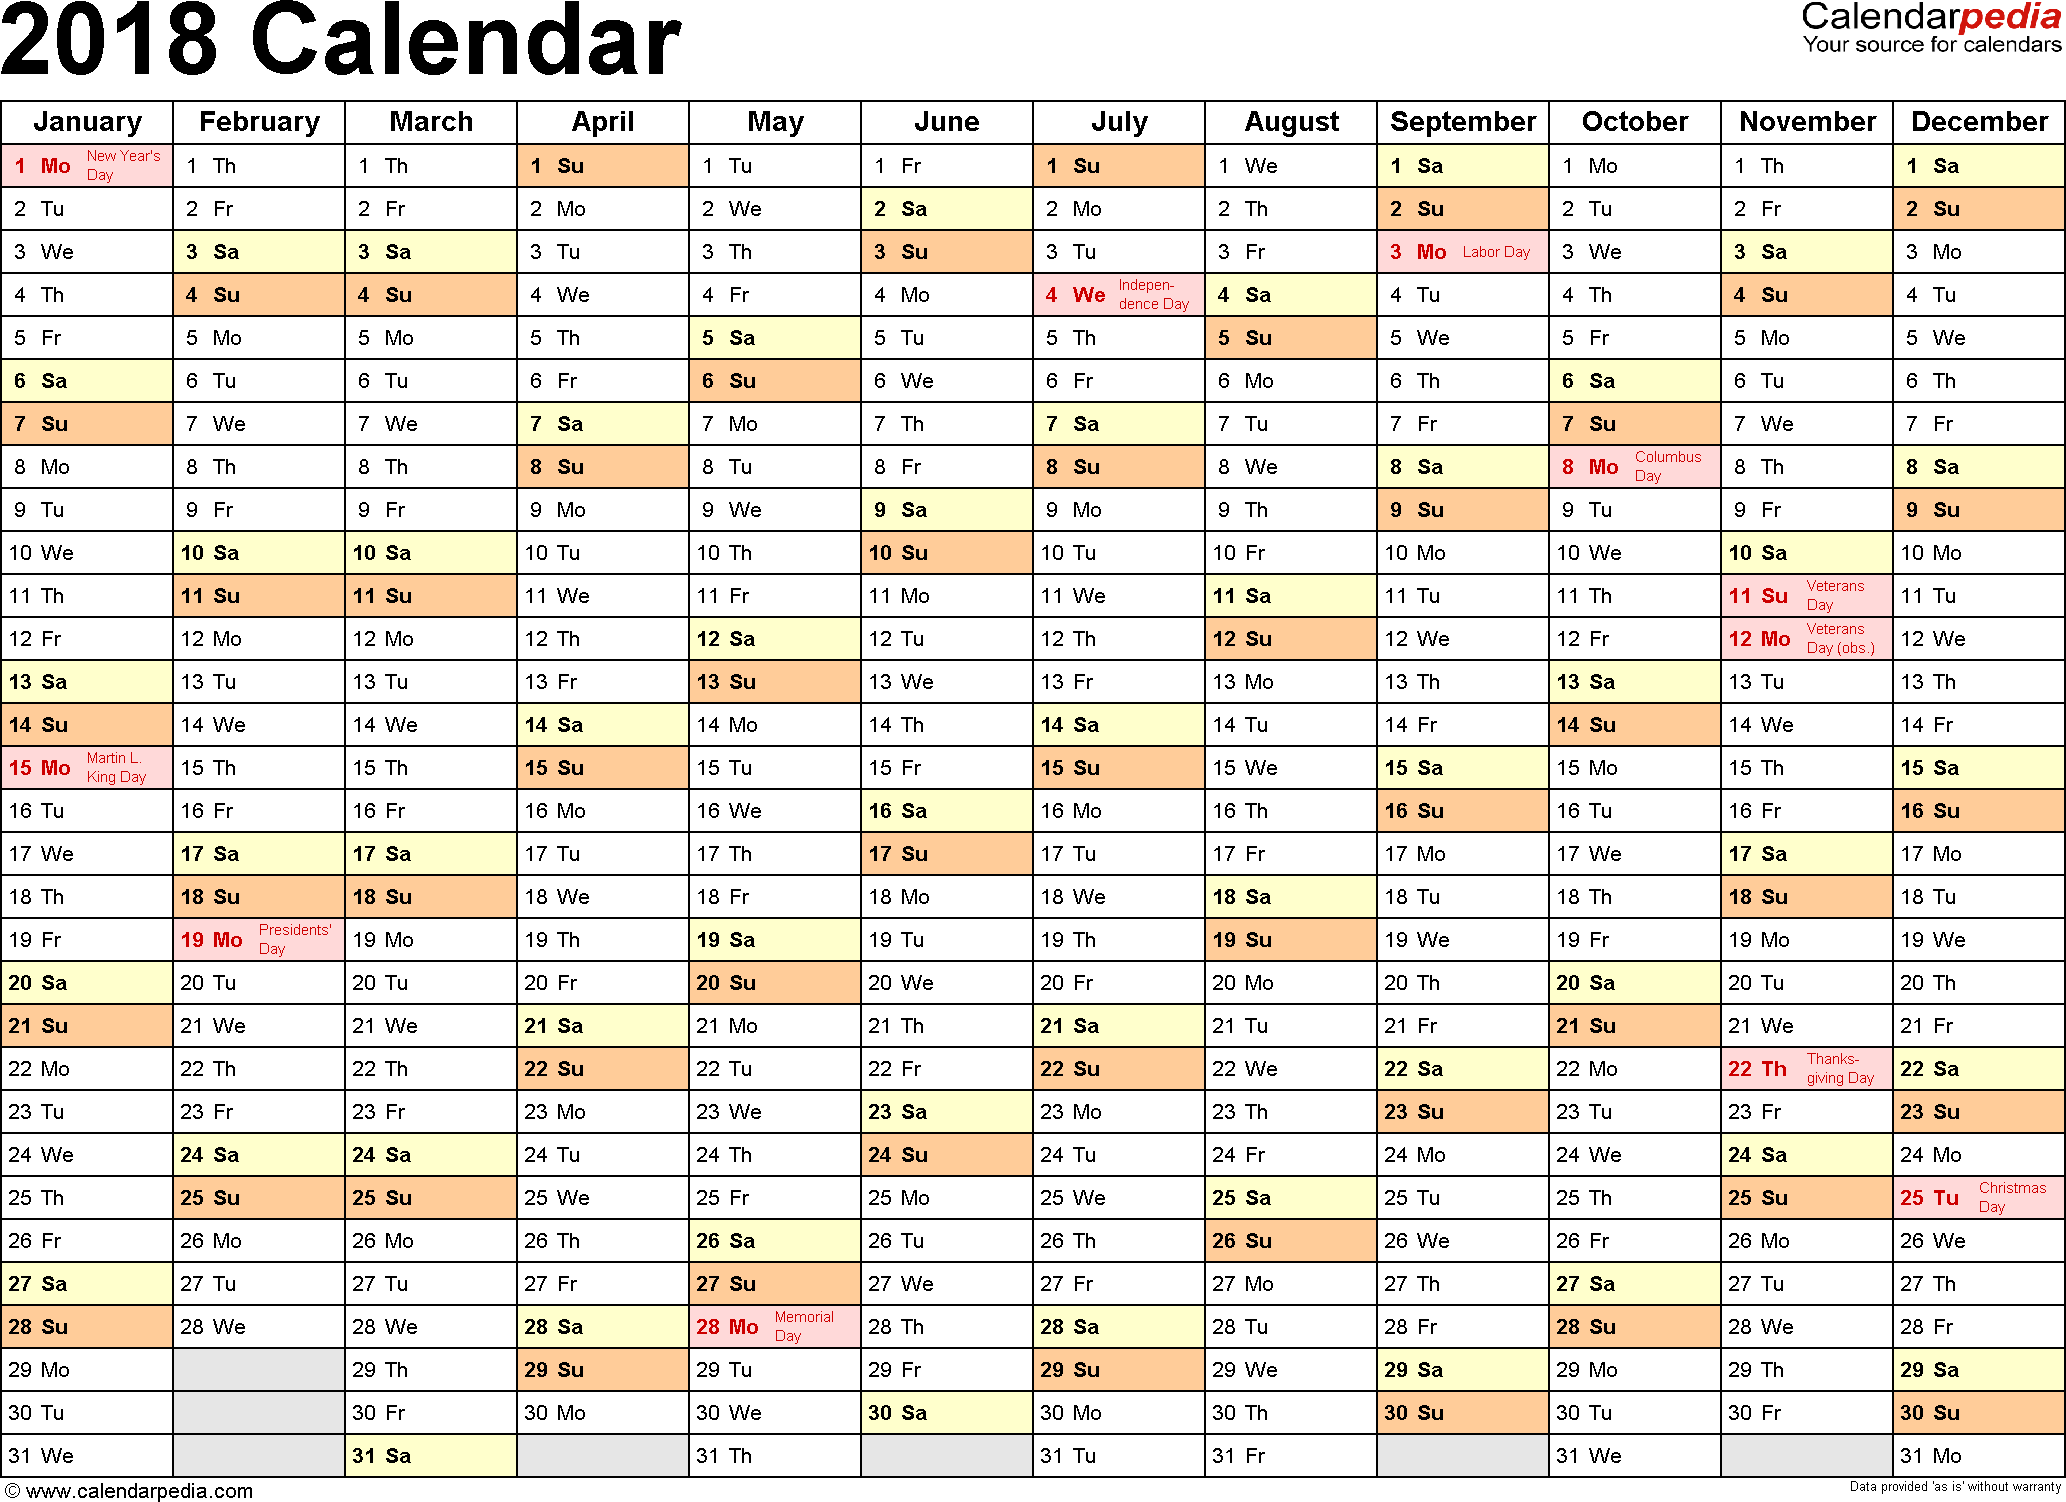 Samples Of Excel Calendar Template 2018 With Holidays And Excel Calendar Template 2018 With Holidays Letter